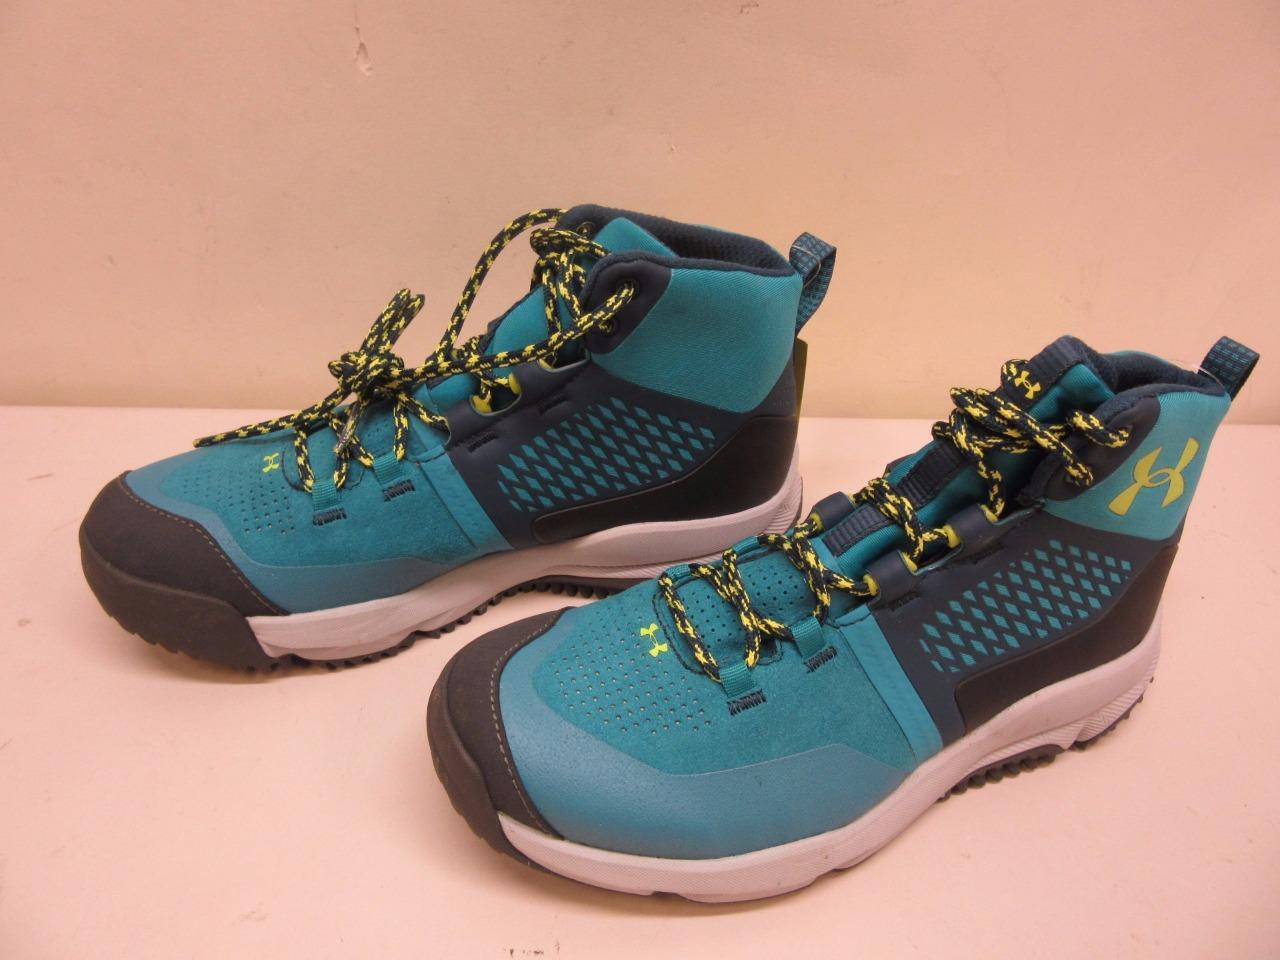 Under Armour Moraine Women's Size 7 SMS Sample Hiking Boots Shoes Blue